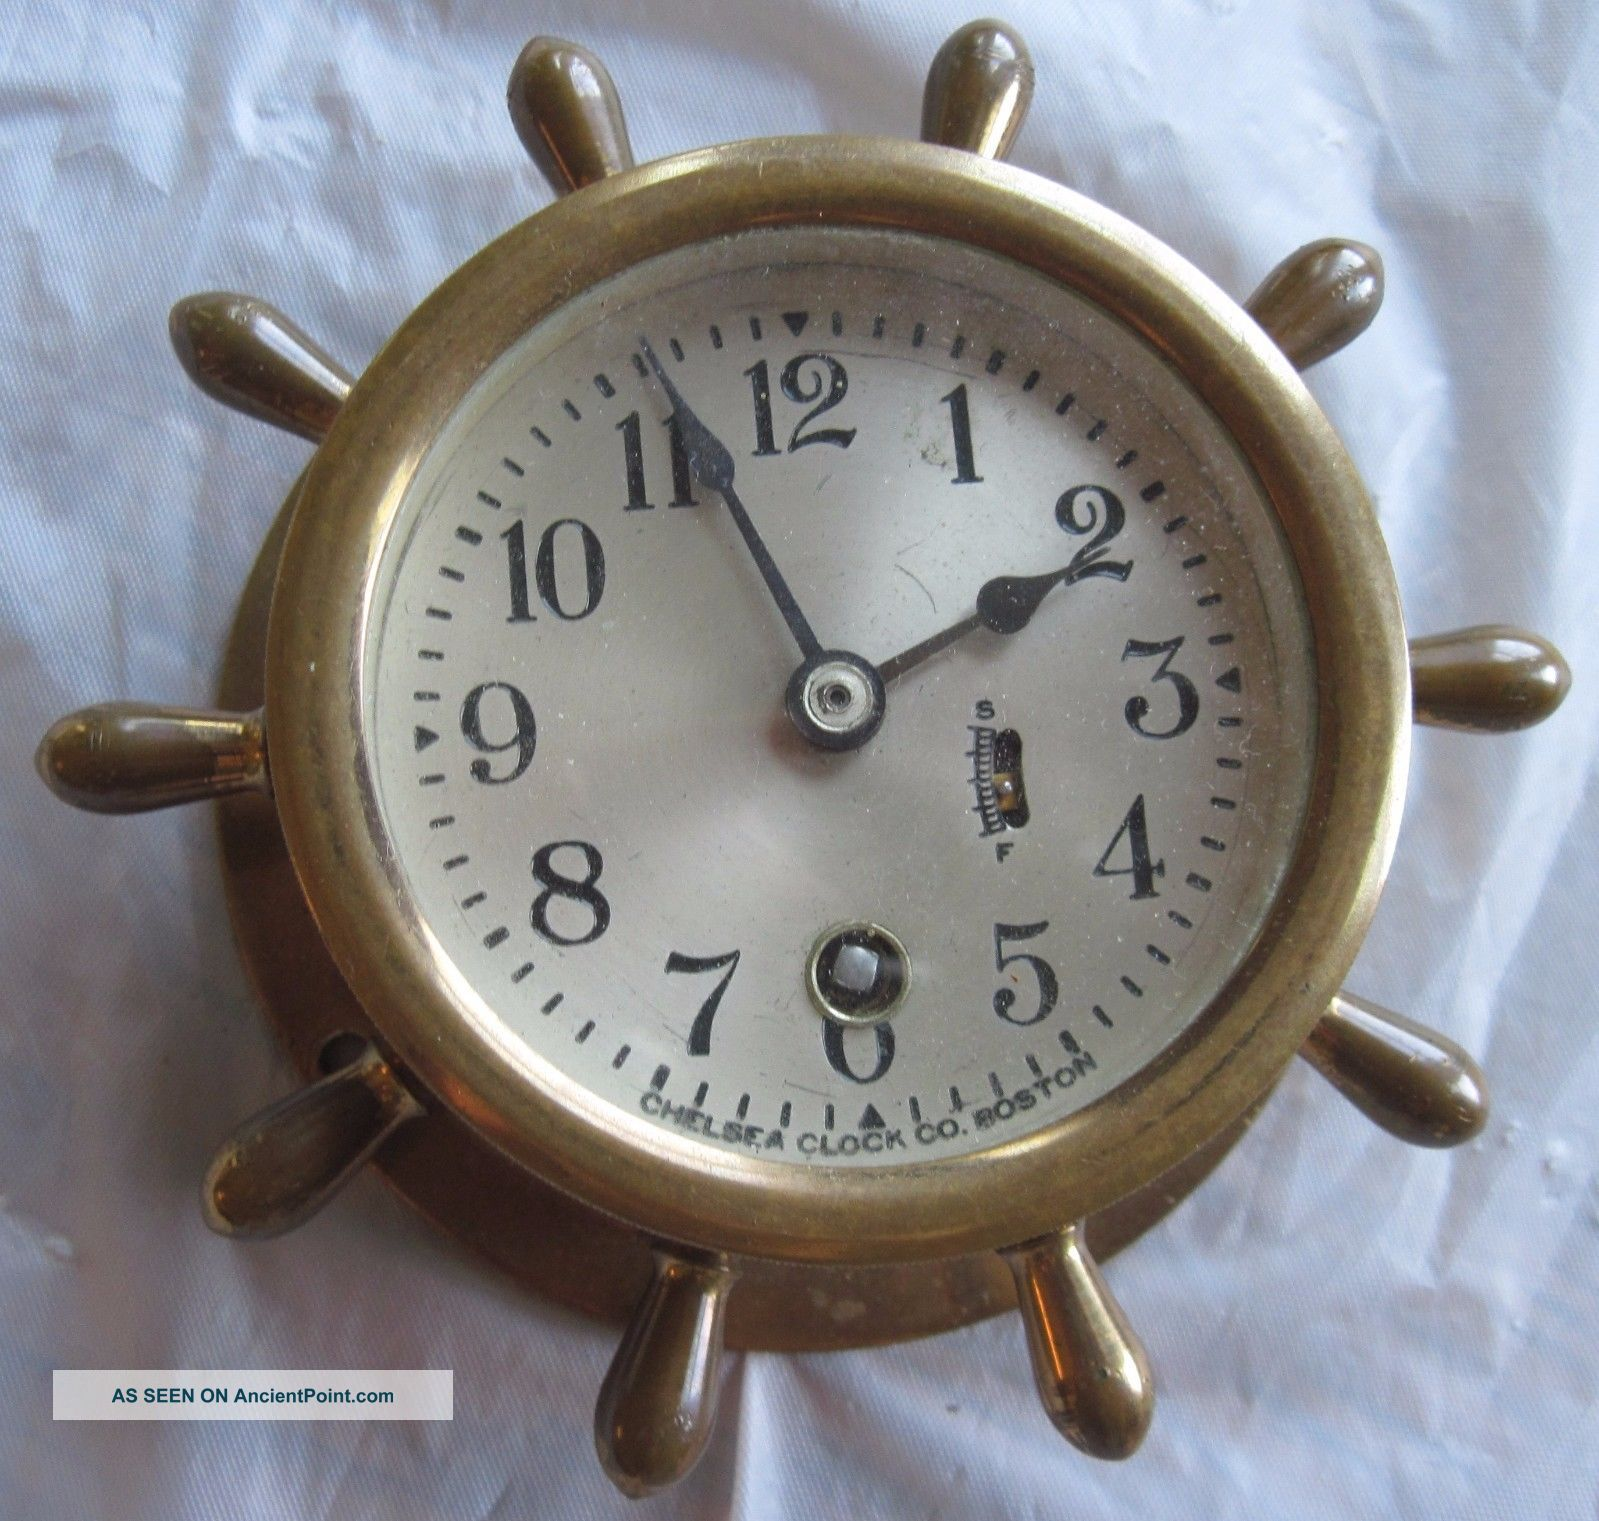 Vintage Chelsea Clock Co.  Boston,  Mass.  Bronze Ship ' S Wheel Clock,  3 Inch Face Clocks photo